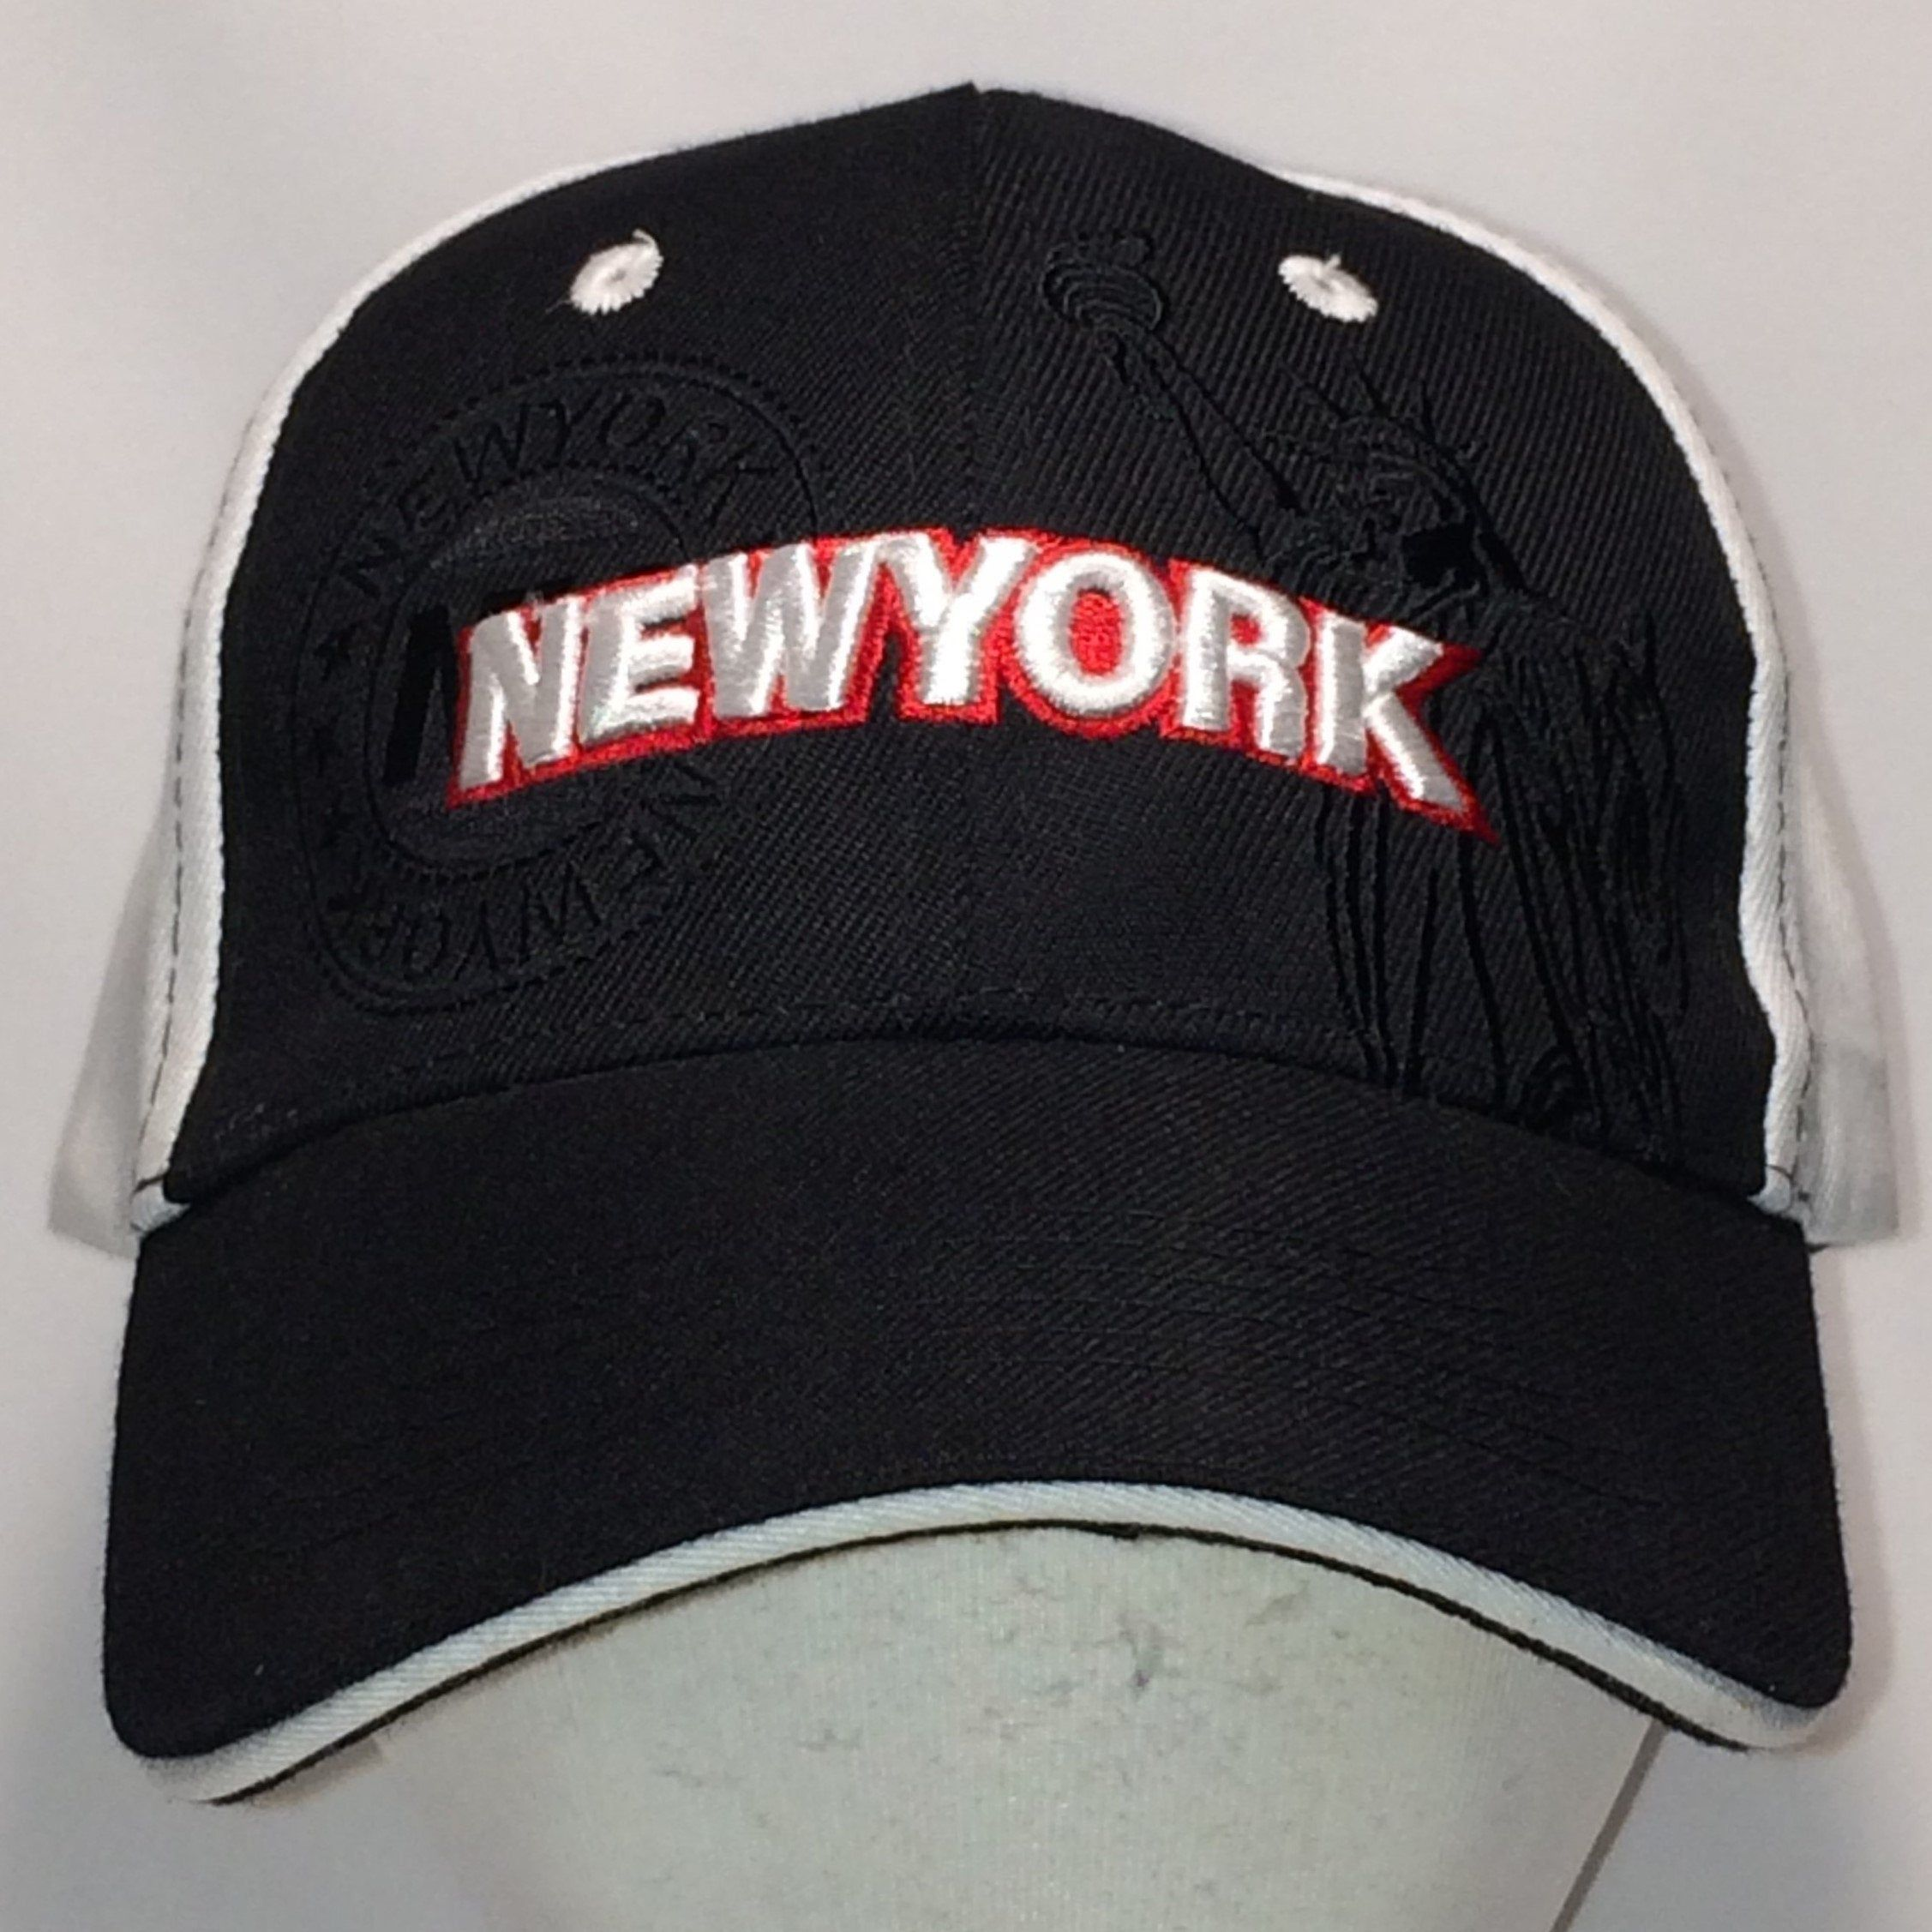 Vintage Big Apple Hat New York Baseball Cap Ny Dad Hats Statue Of Liberty Nyc Black White Travel Sports Caps Cool Gifts For Men Dad Hats Apple Hat Hats For Men